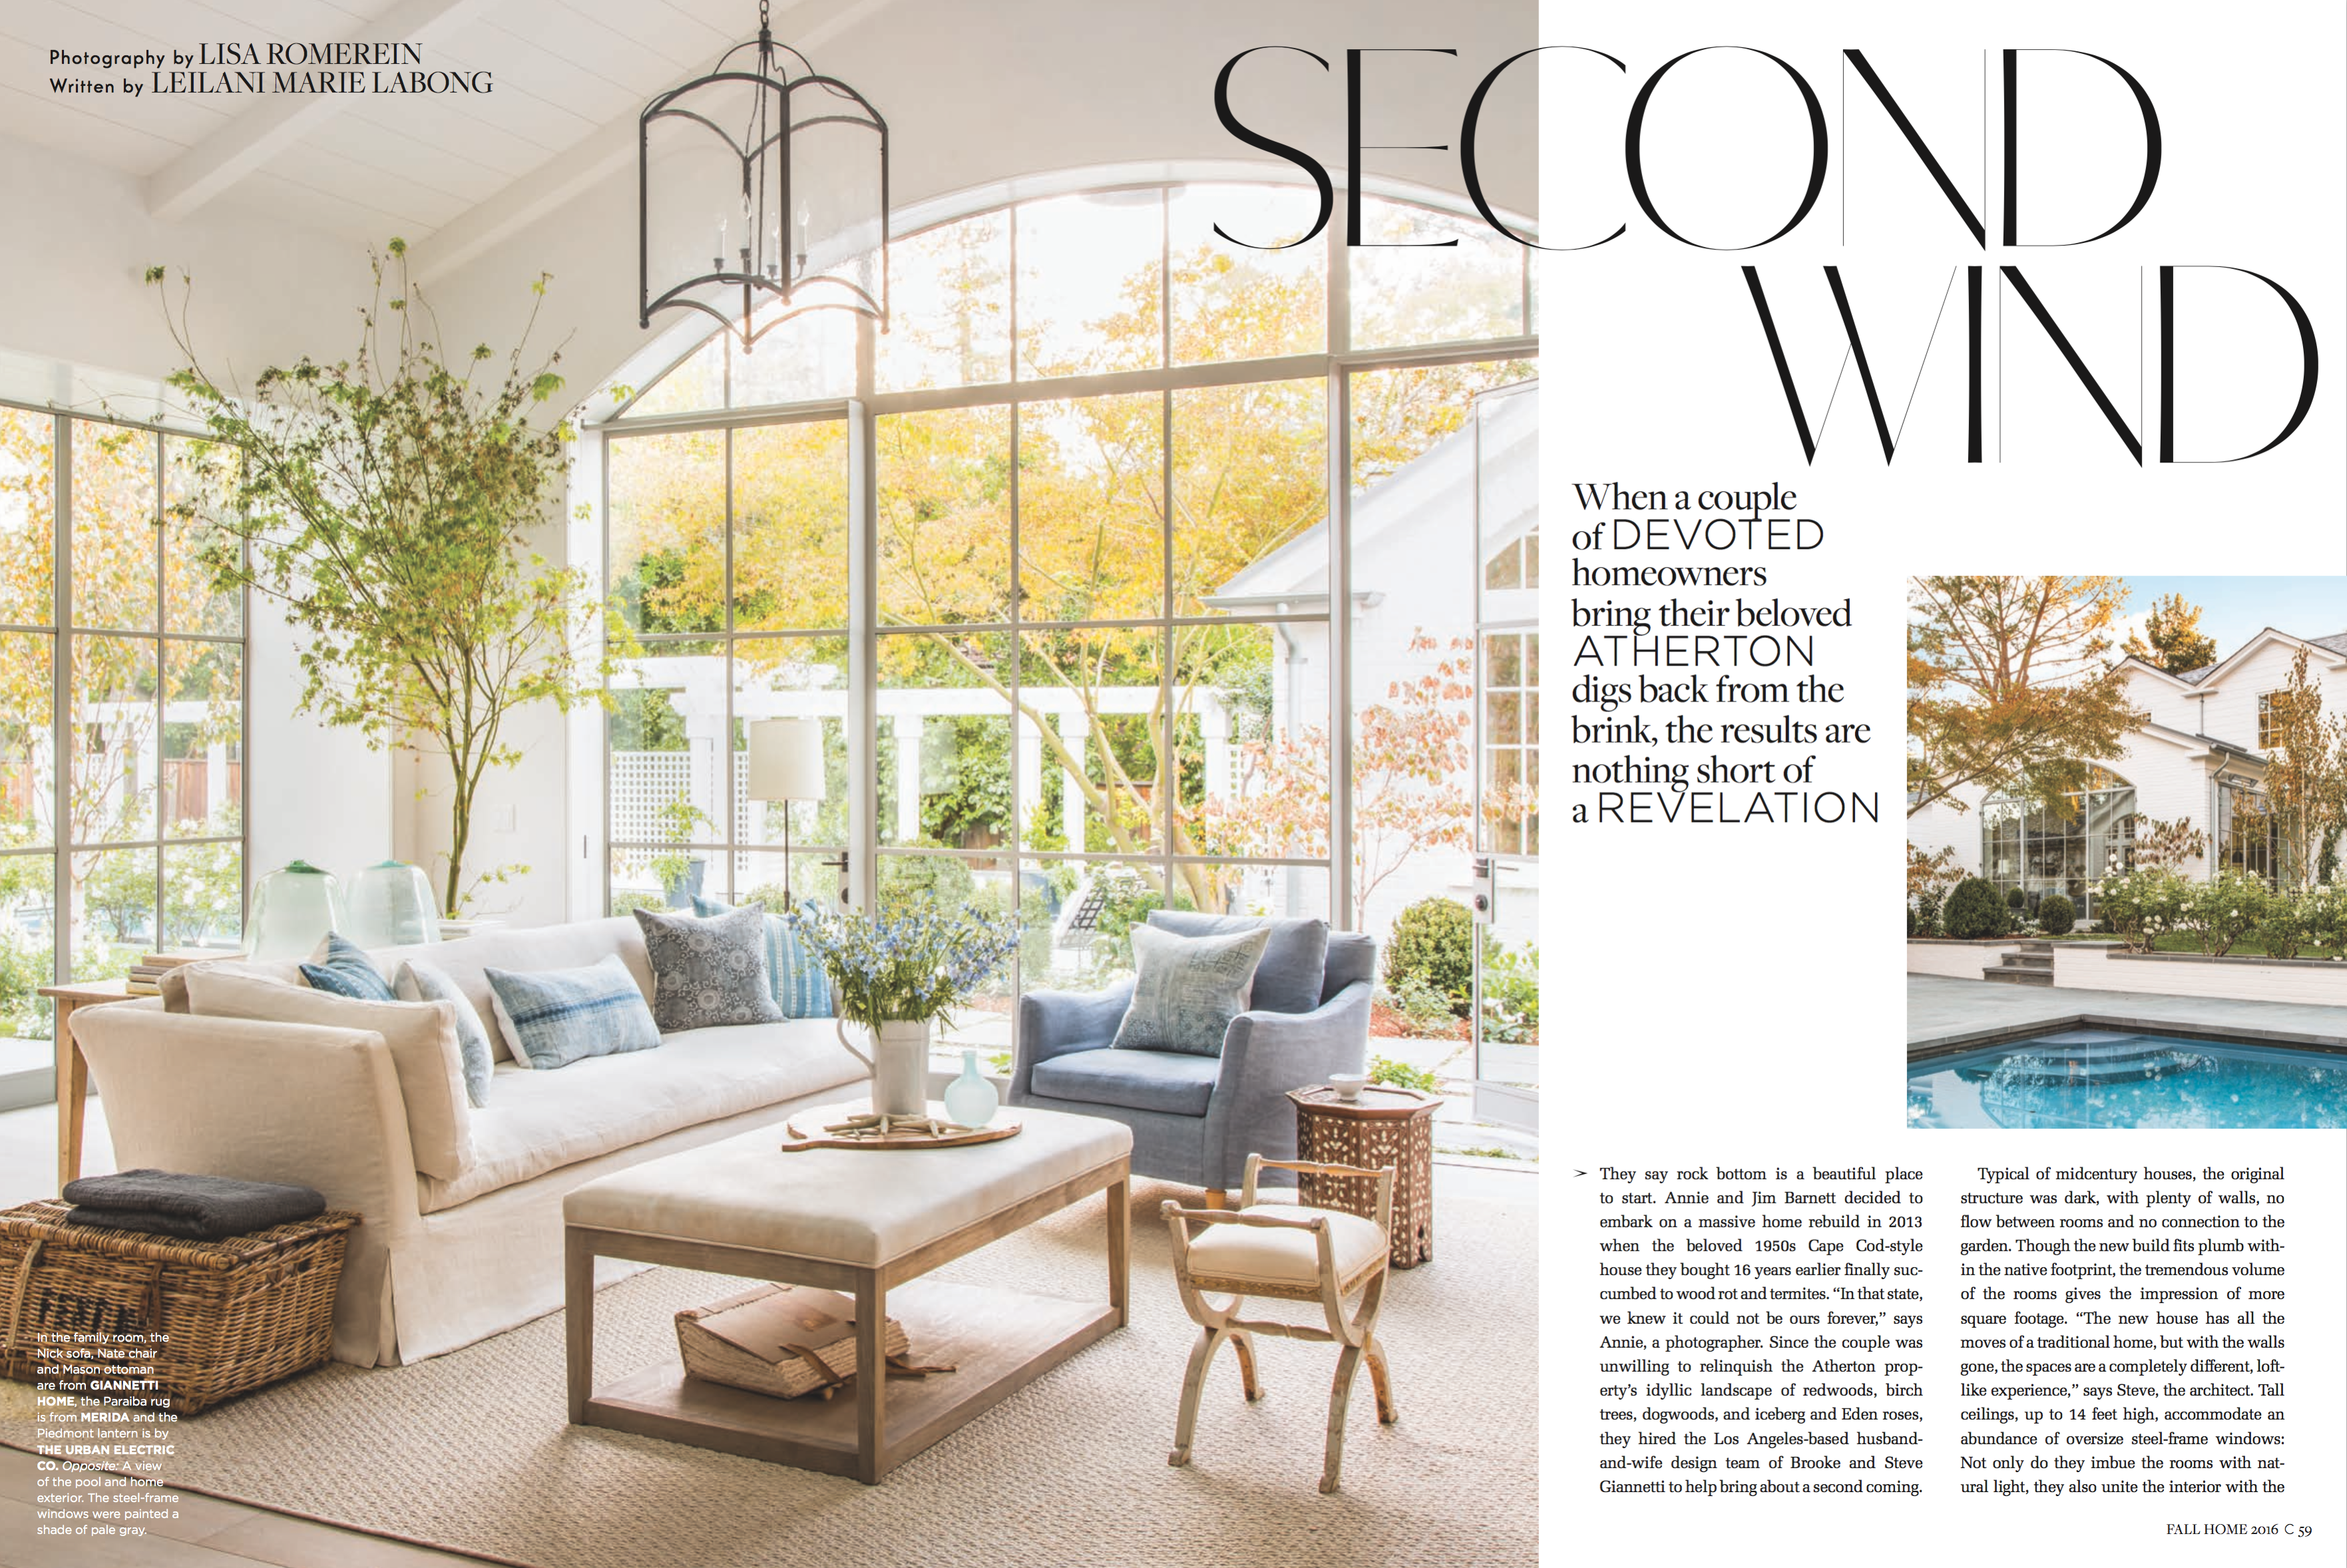 Our Clients\' Atherton, Ca home in C Home Magazine! - Velvet & Linen